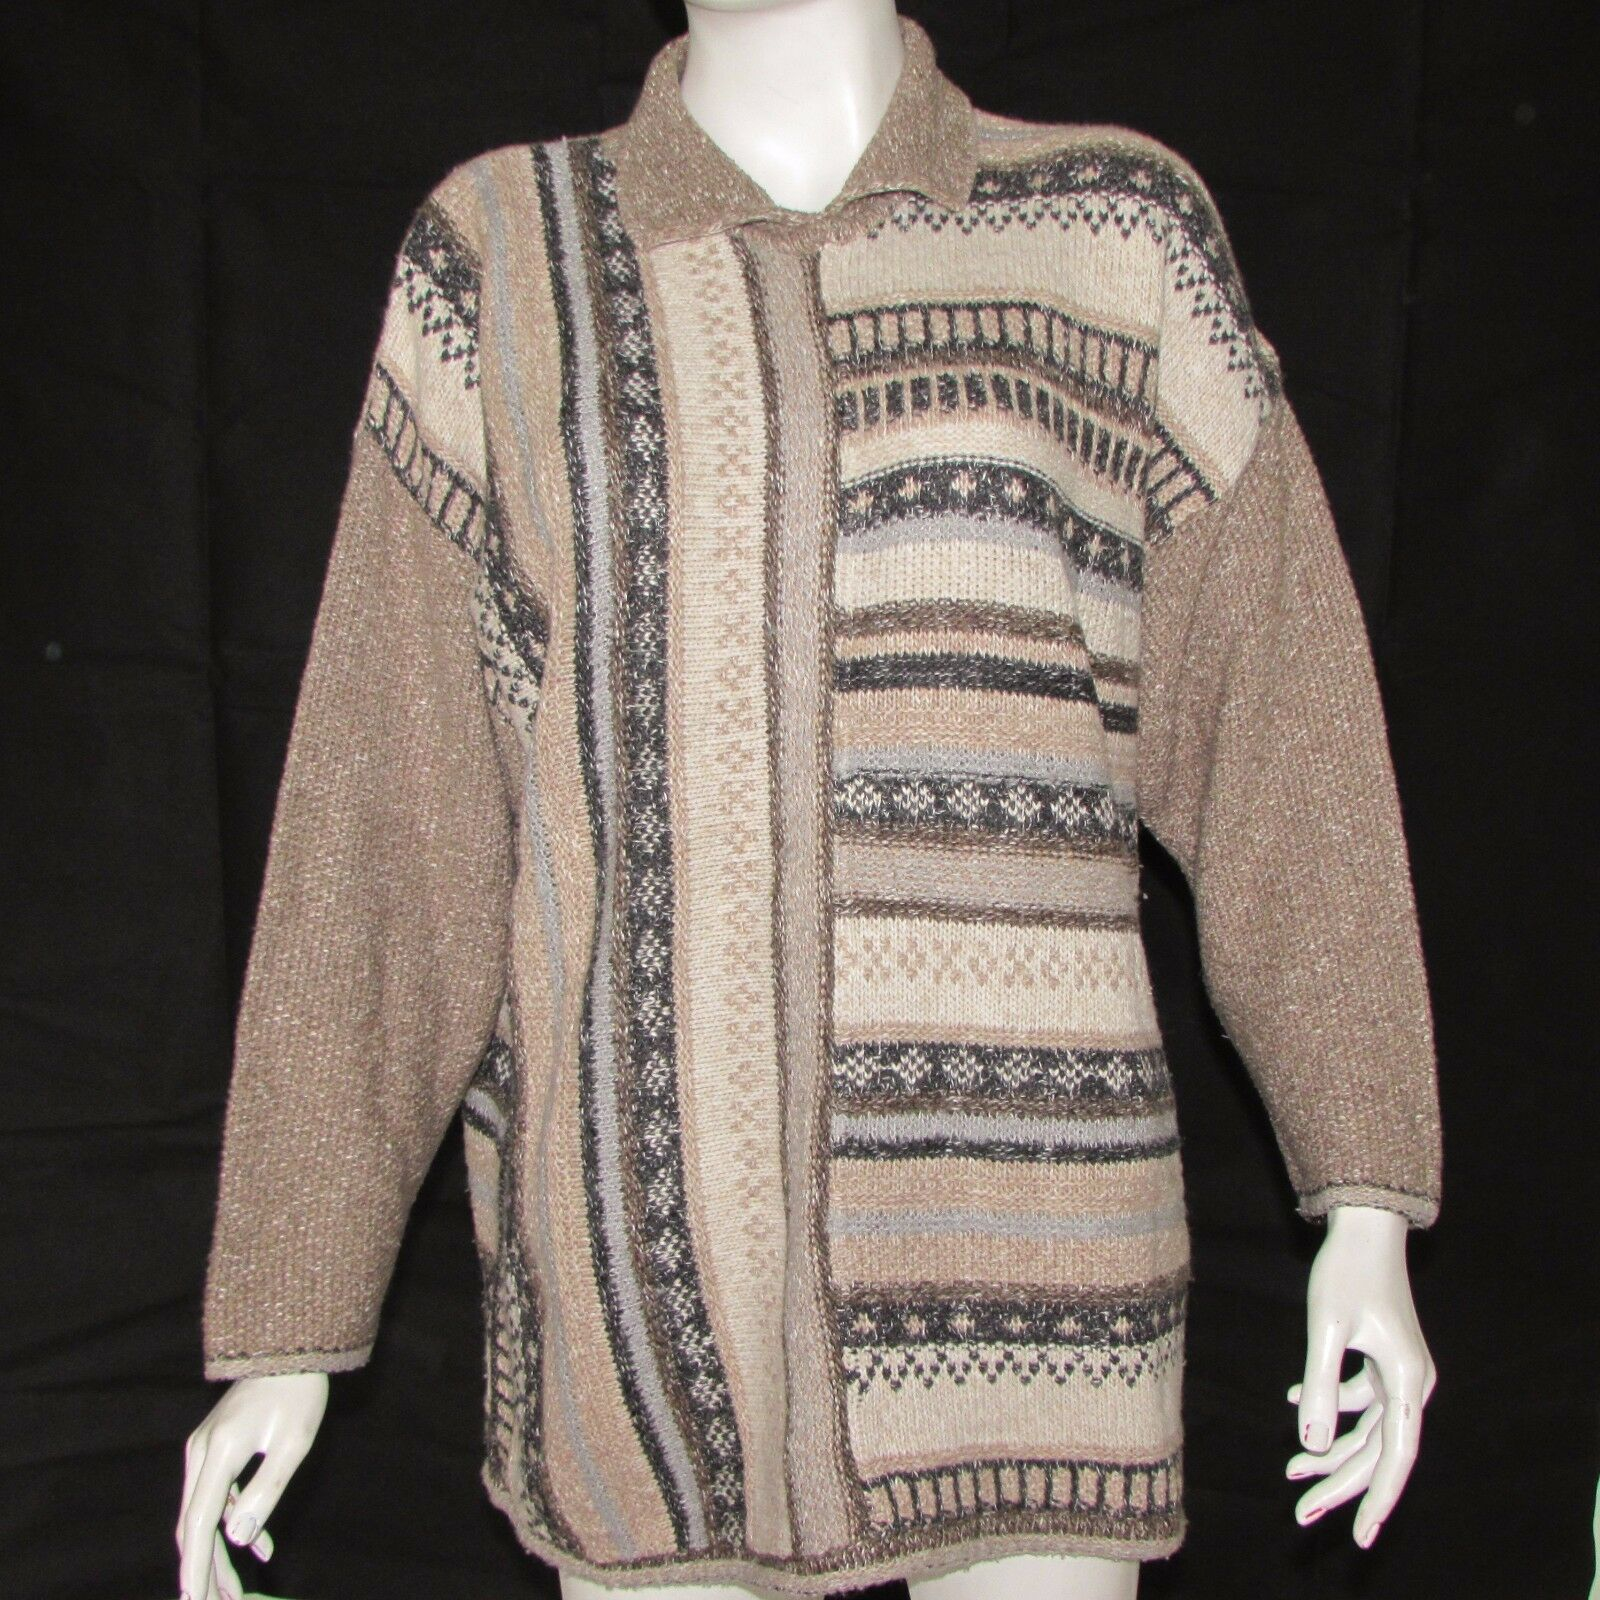 VINTAGE MONARI BY BOSCH TEXTIL SWEATER CARDIGAN SIZE L 42 LONG SLEEVE WOOL ITALY